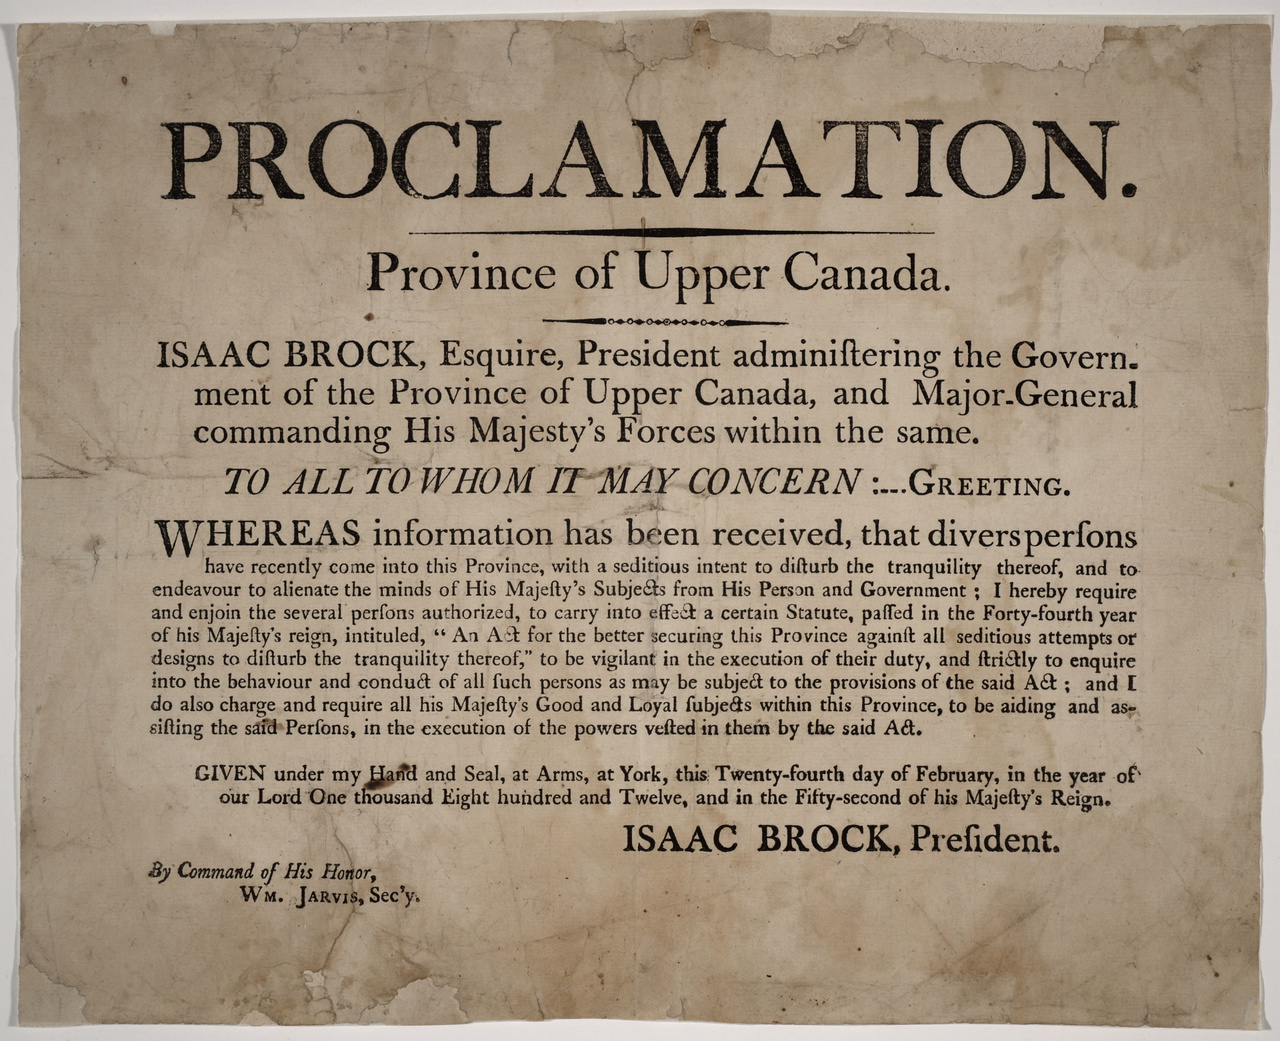 Proclamation, Province of Upper Canada